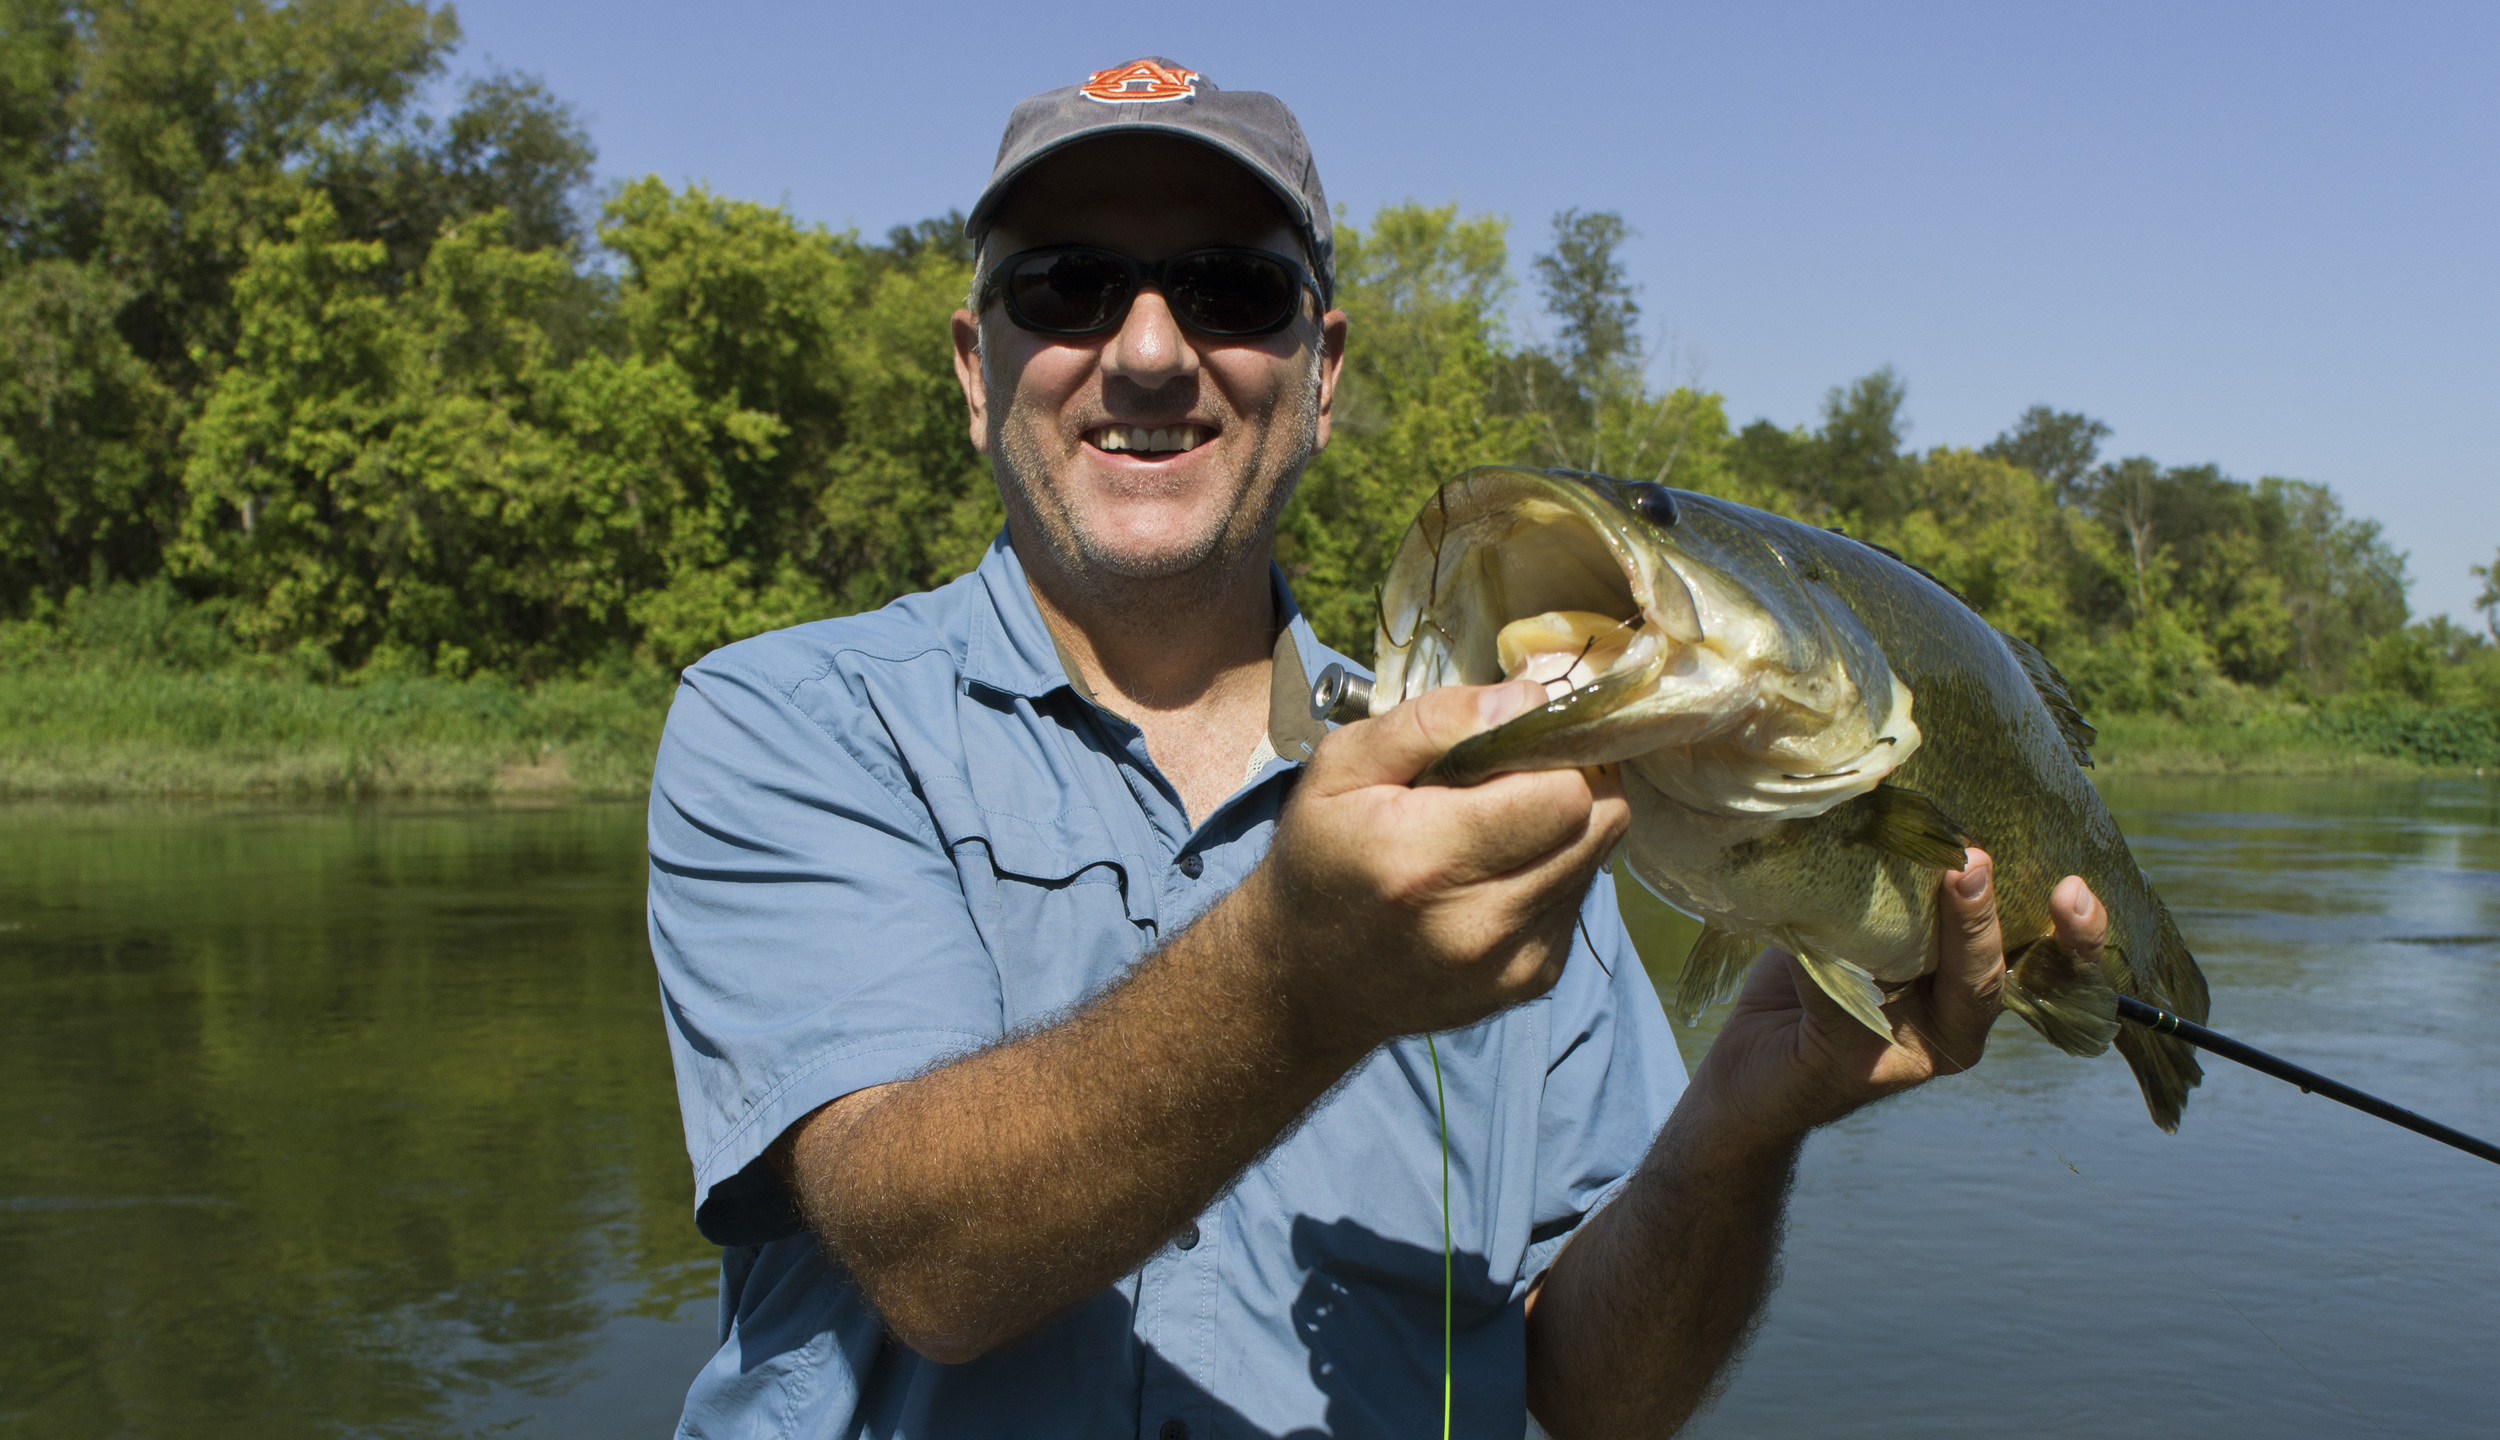 Jim Canning with a 5 pound bass from the Colorado River